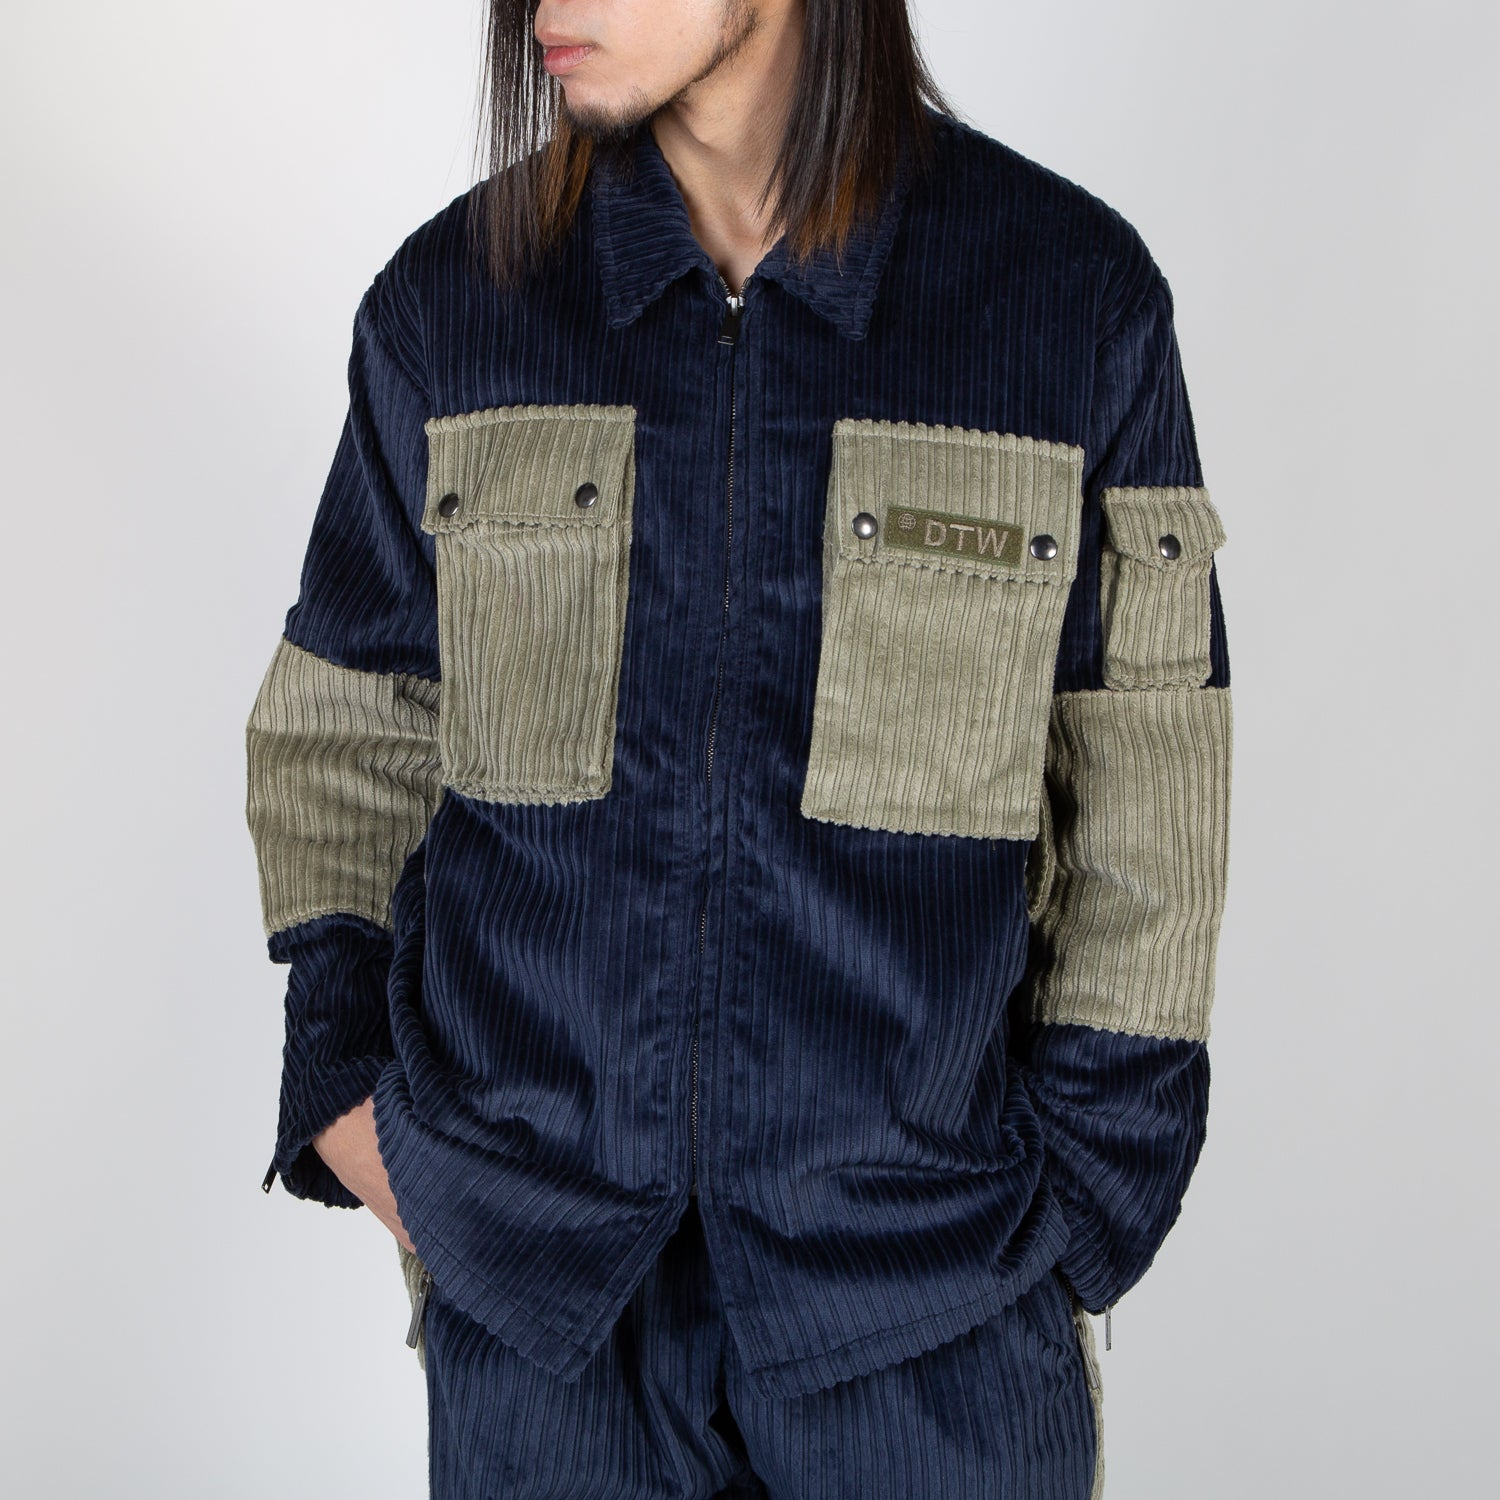 Corduroy zipper shirt navy and green by Blue Marble at Secret Location